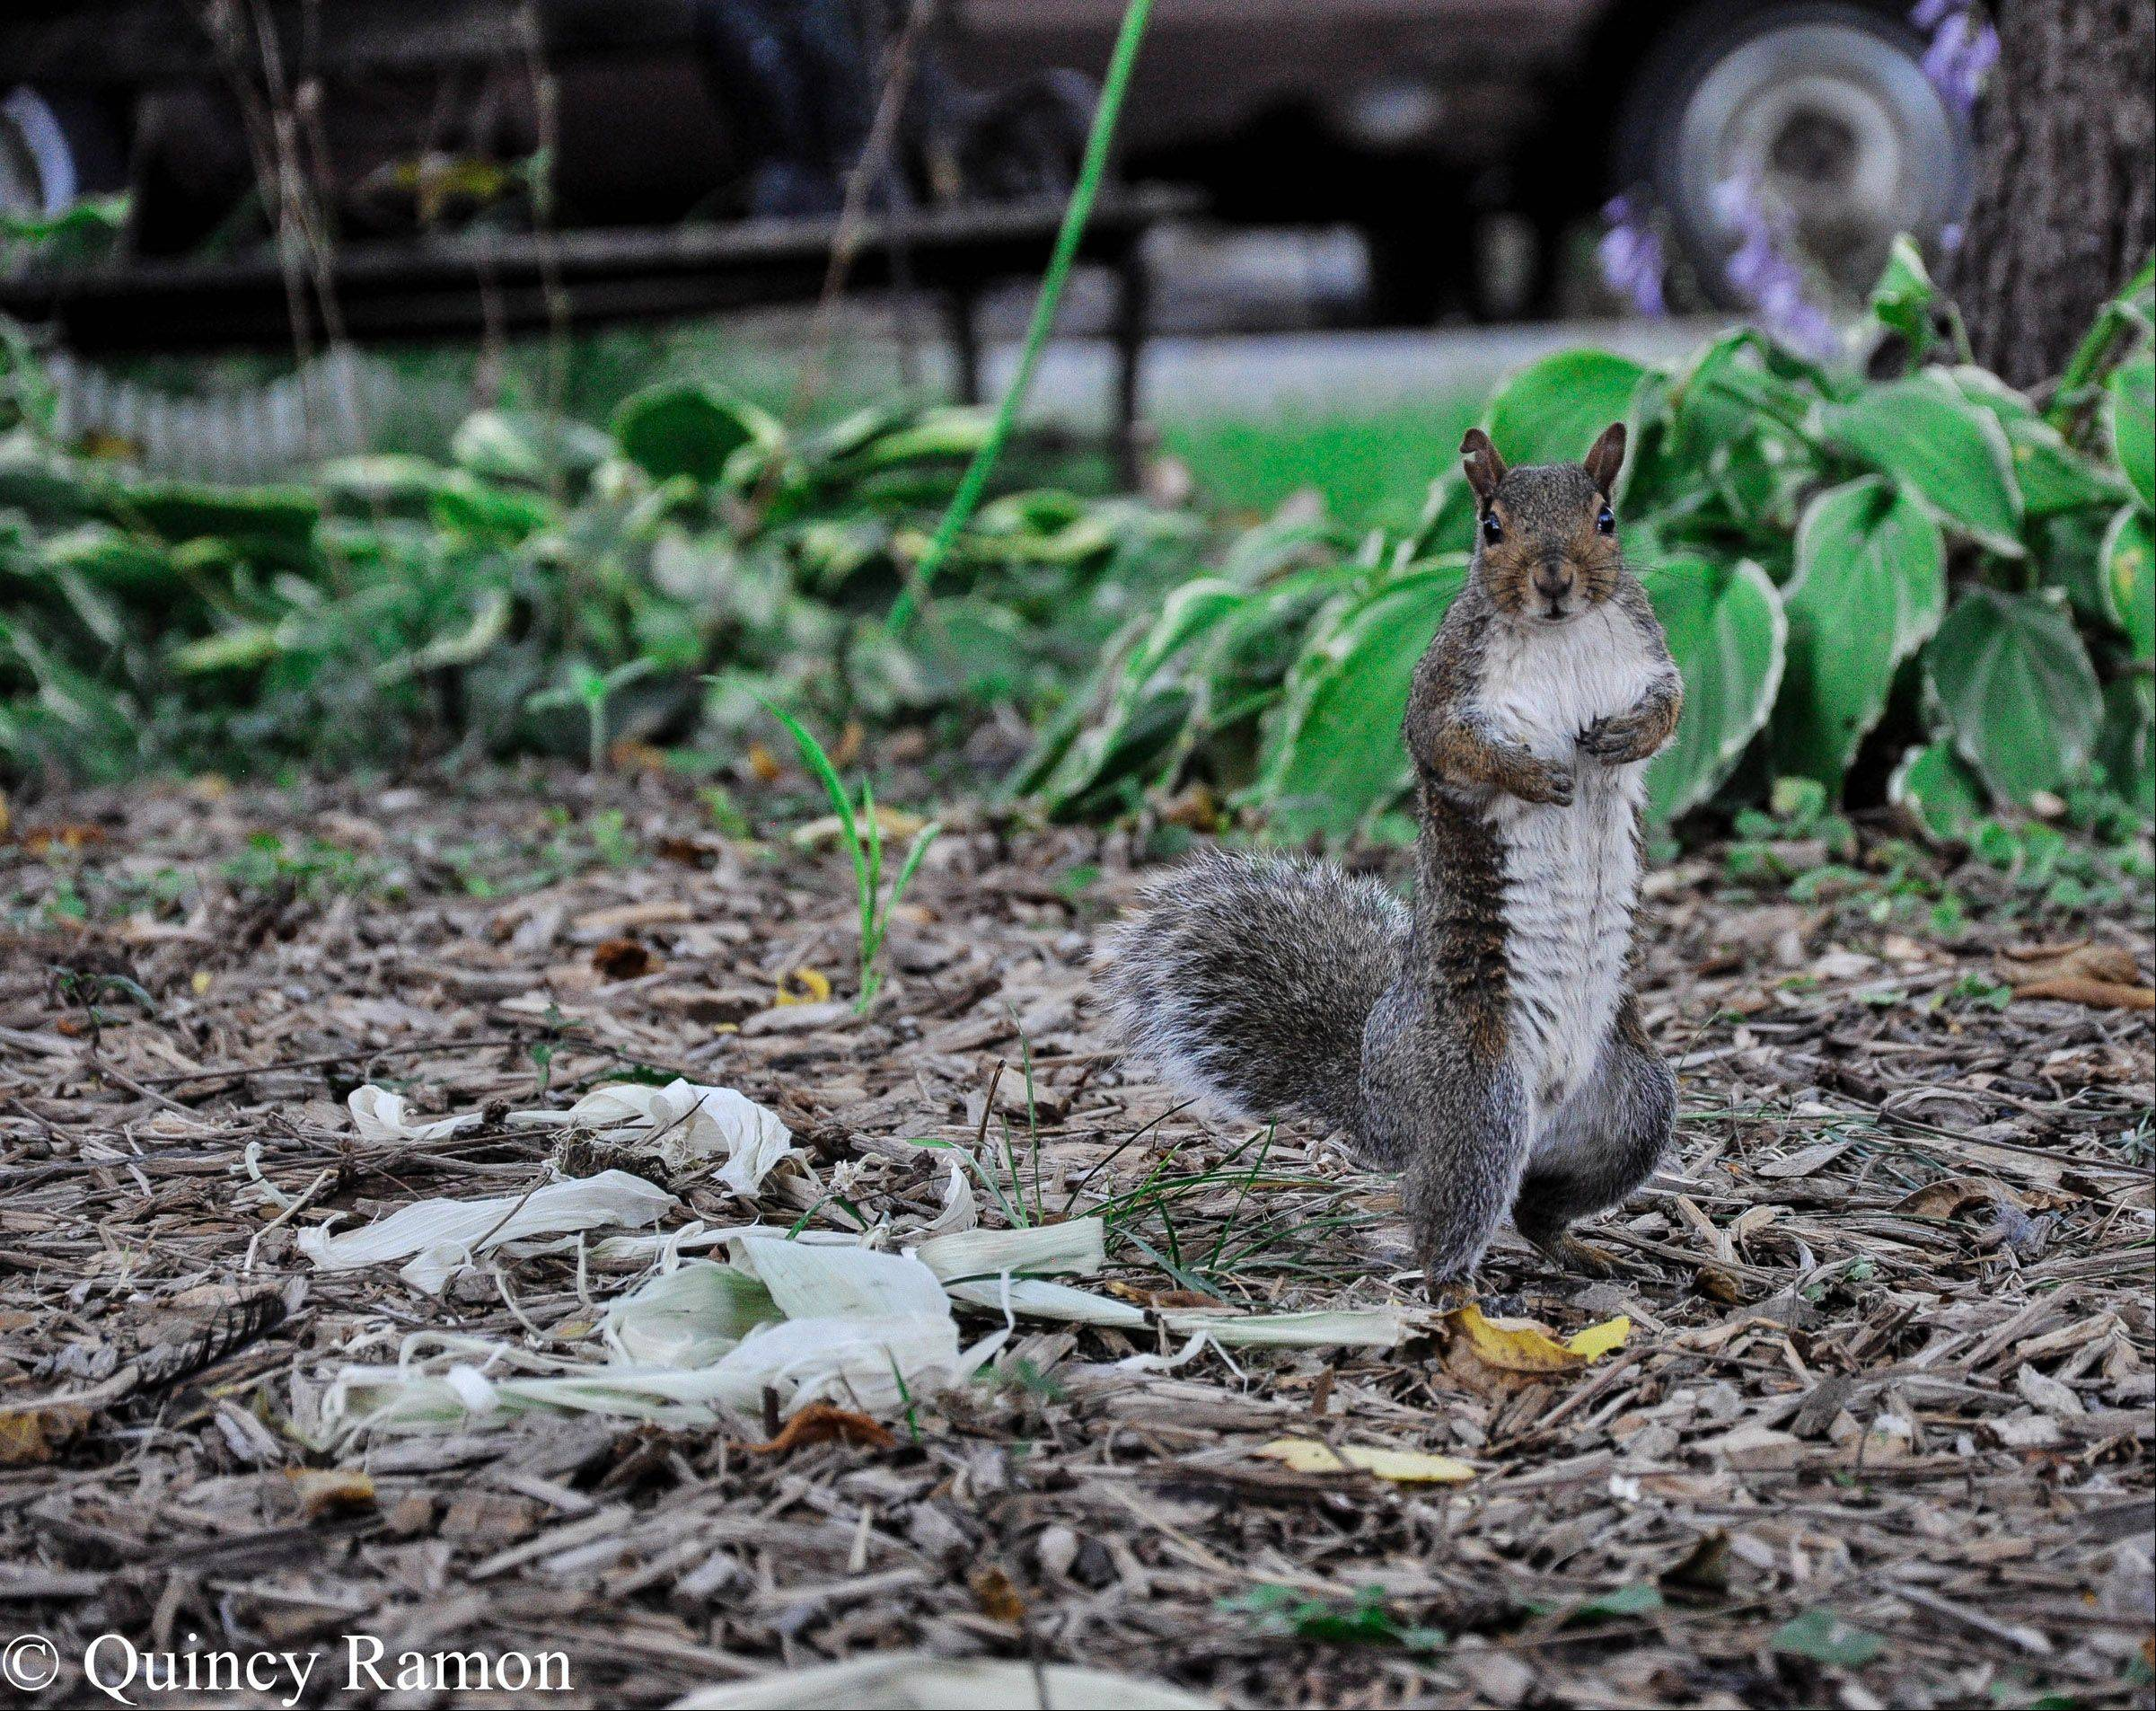 A squirrel sits and eats some peanuts on a Mount Prospect front yard in June.